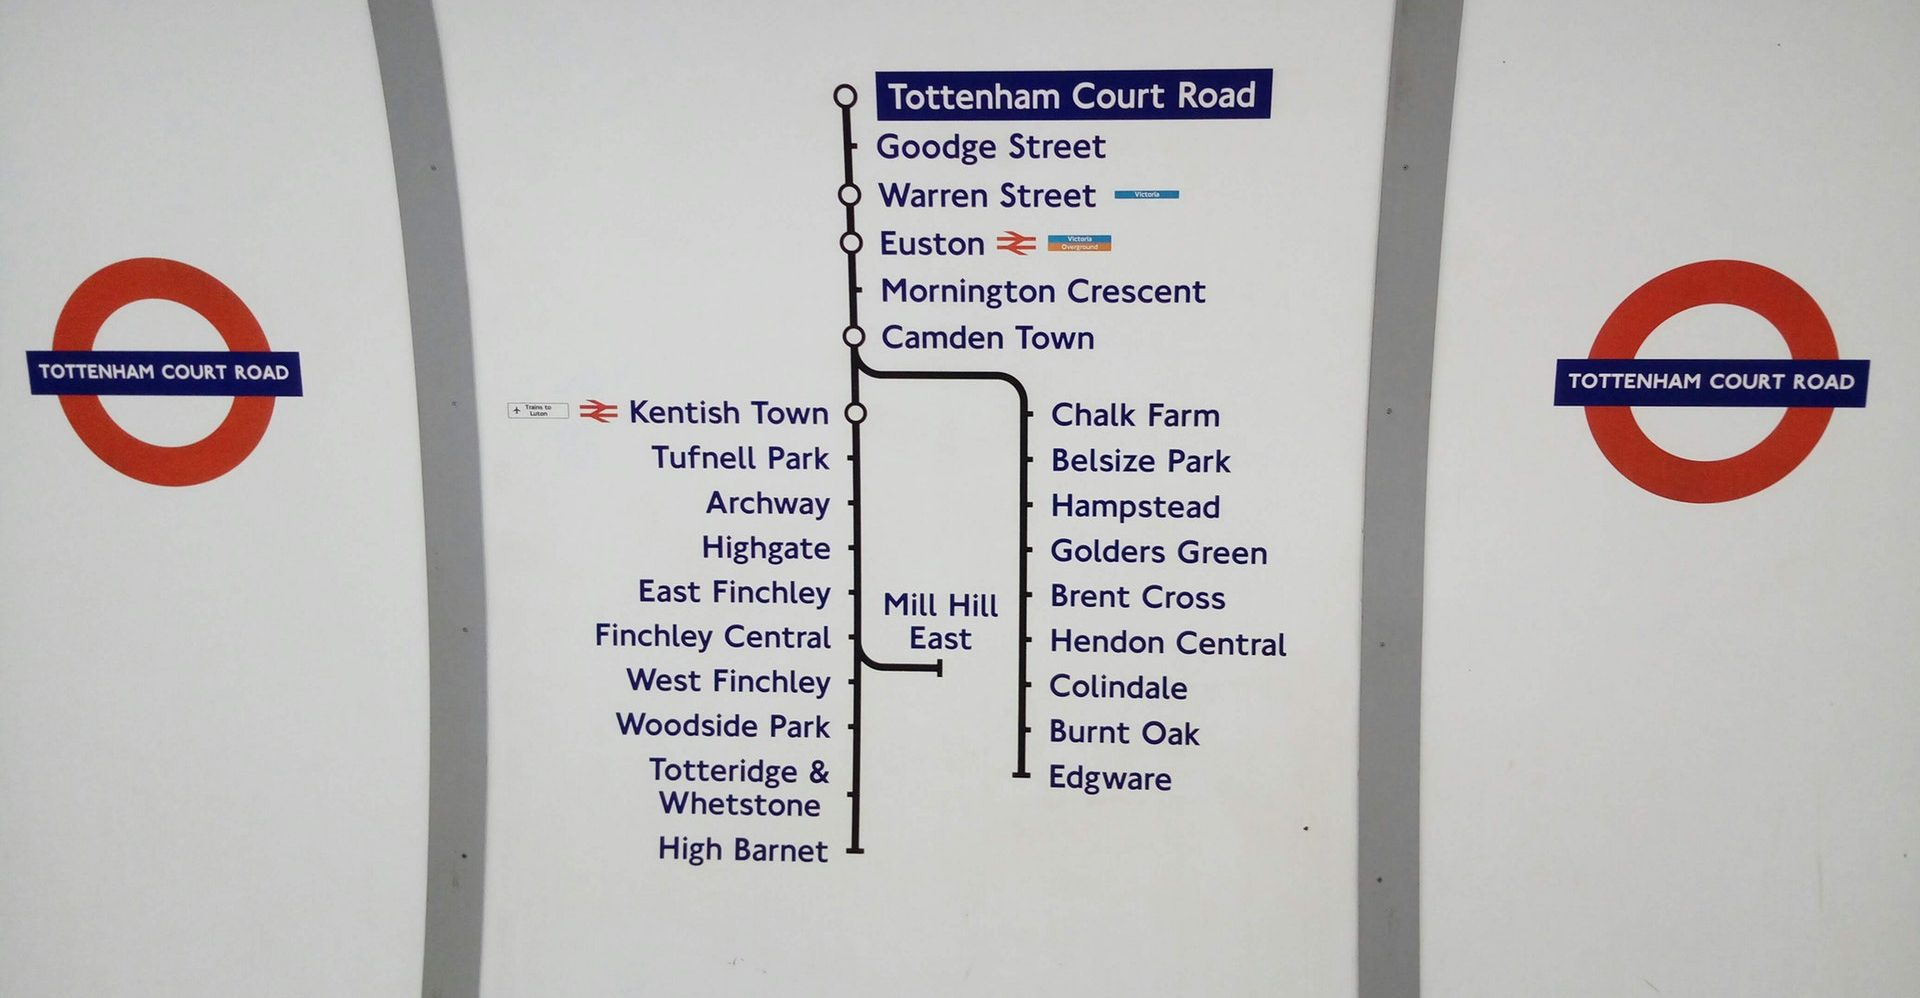 Tottenham Court Road Tube Station sign